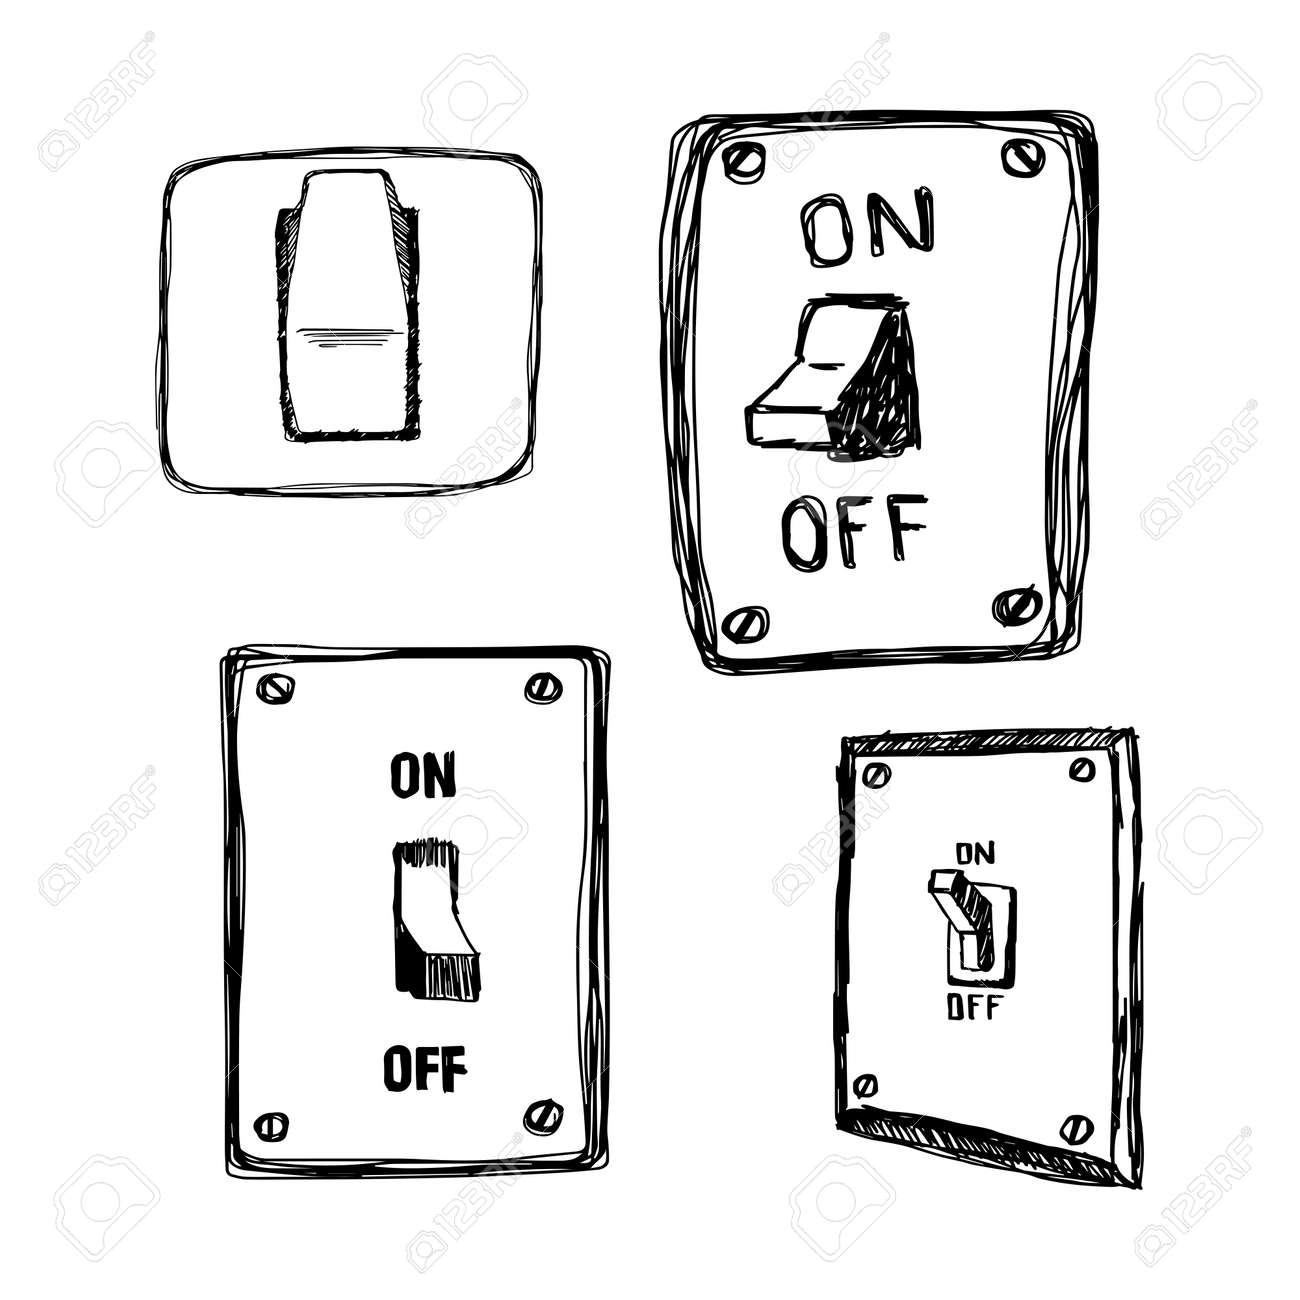 Illustration Vector Hand Drawn Doodles Single Wall Light Switch Stock